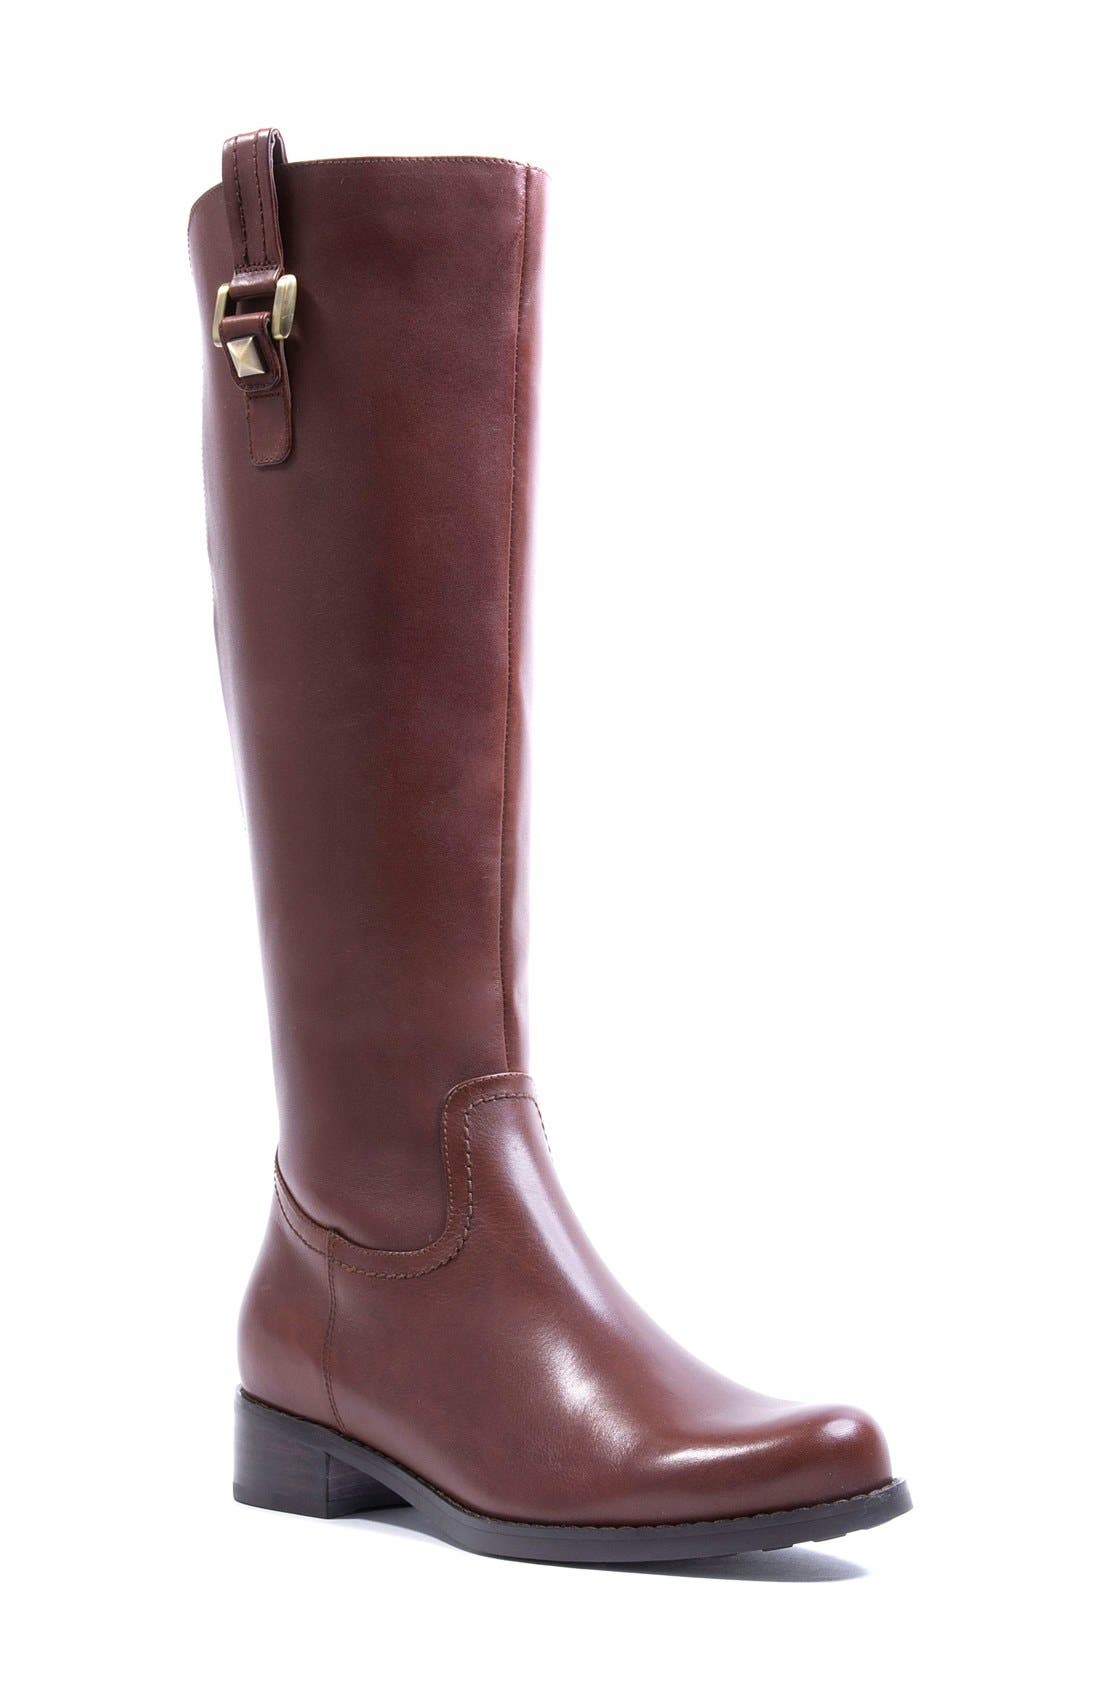 'Velvet' Waterproof Riding Boot,                             Main thumbnail 1, color,                             Butterscotch Leather